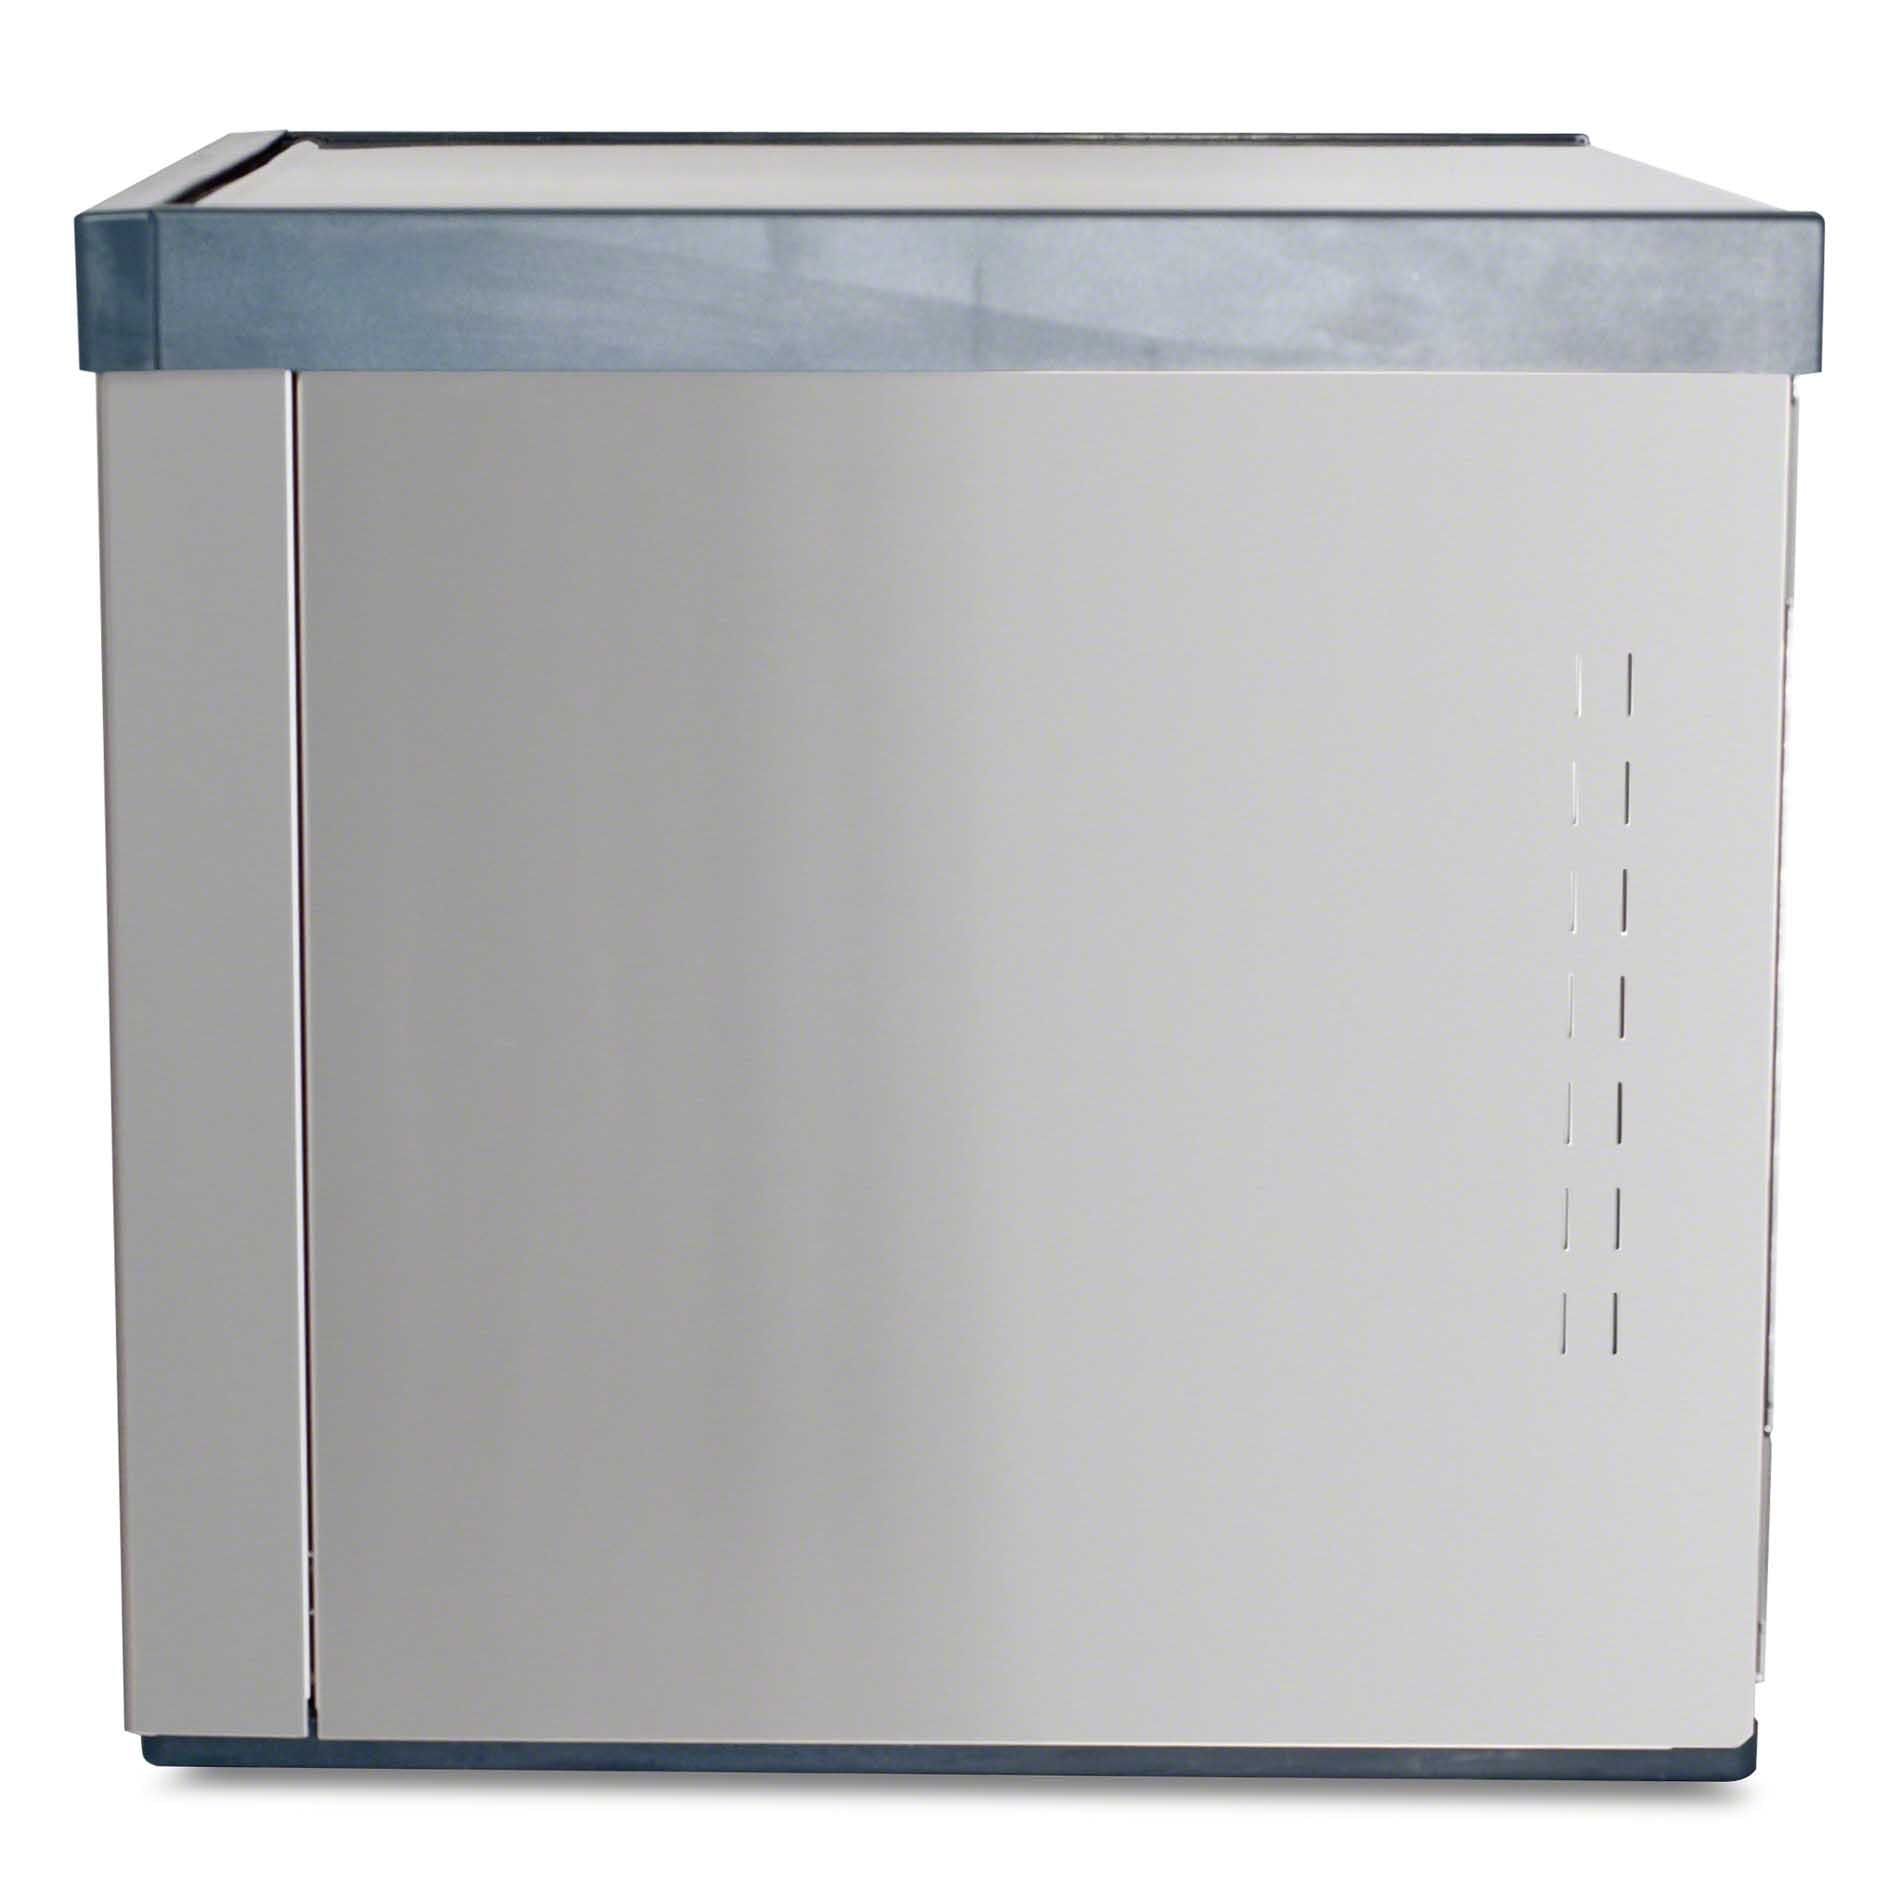 Scotsman - C0630SA-32A 776 lb Half Size Cube Ice Machine - Prodigy Series - sold by Food Service Warehouse